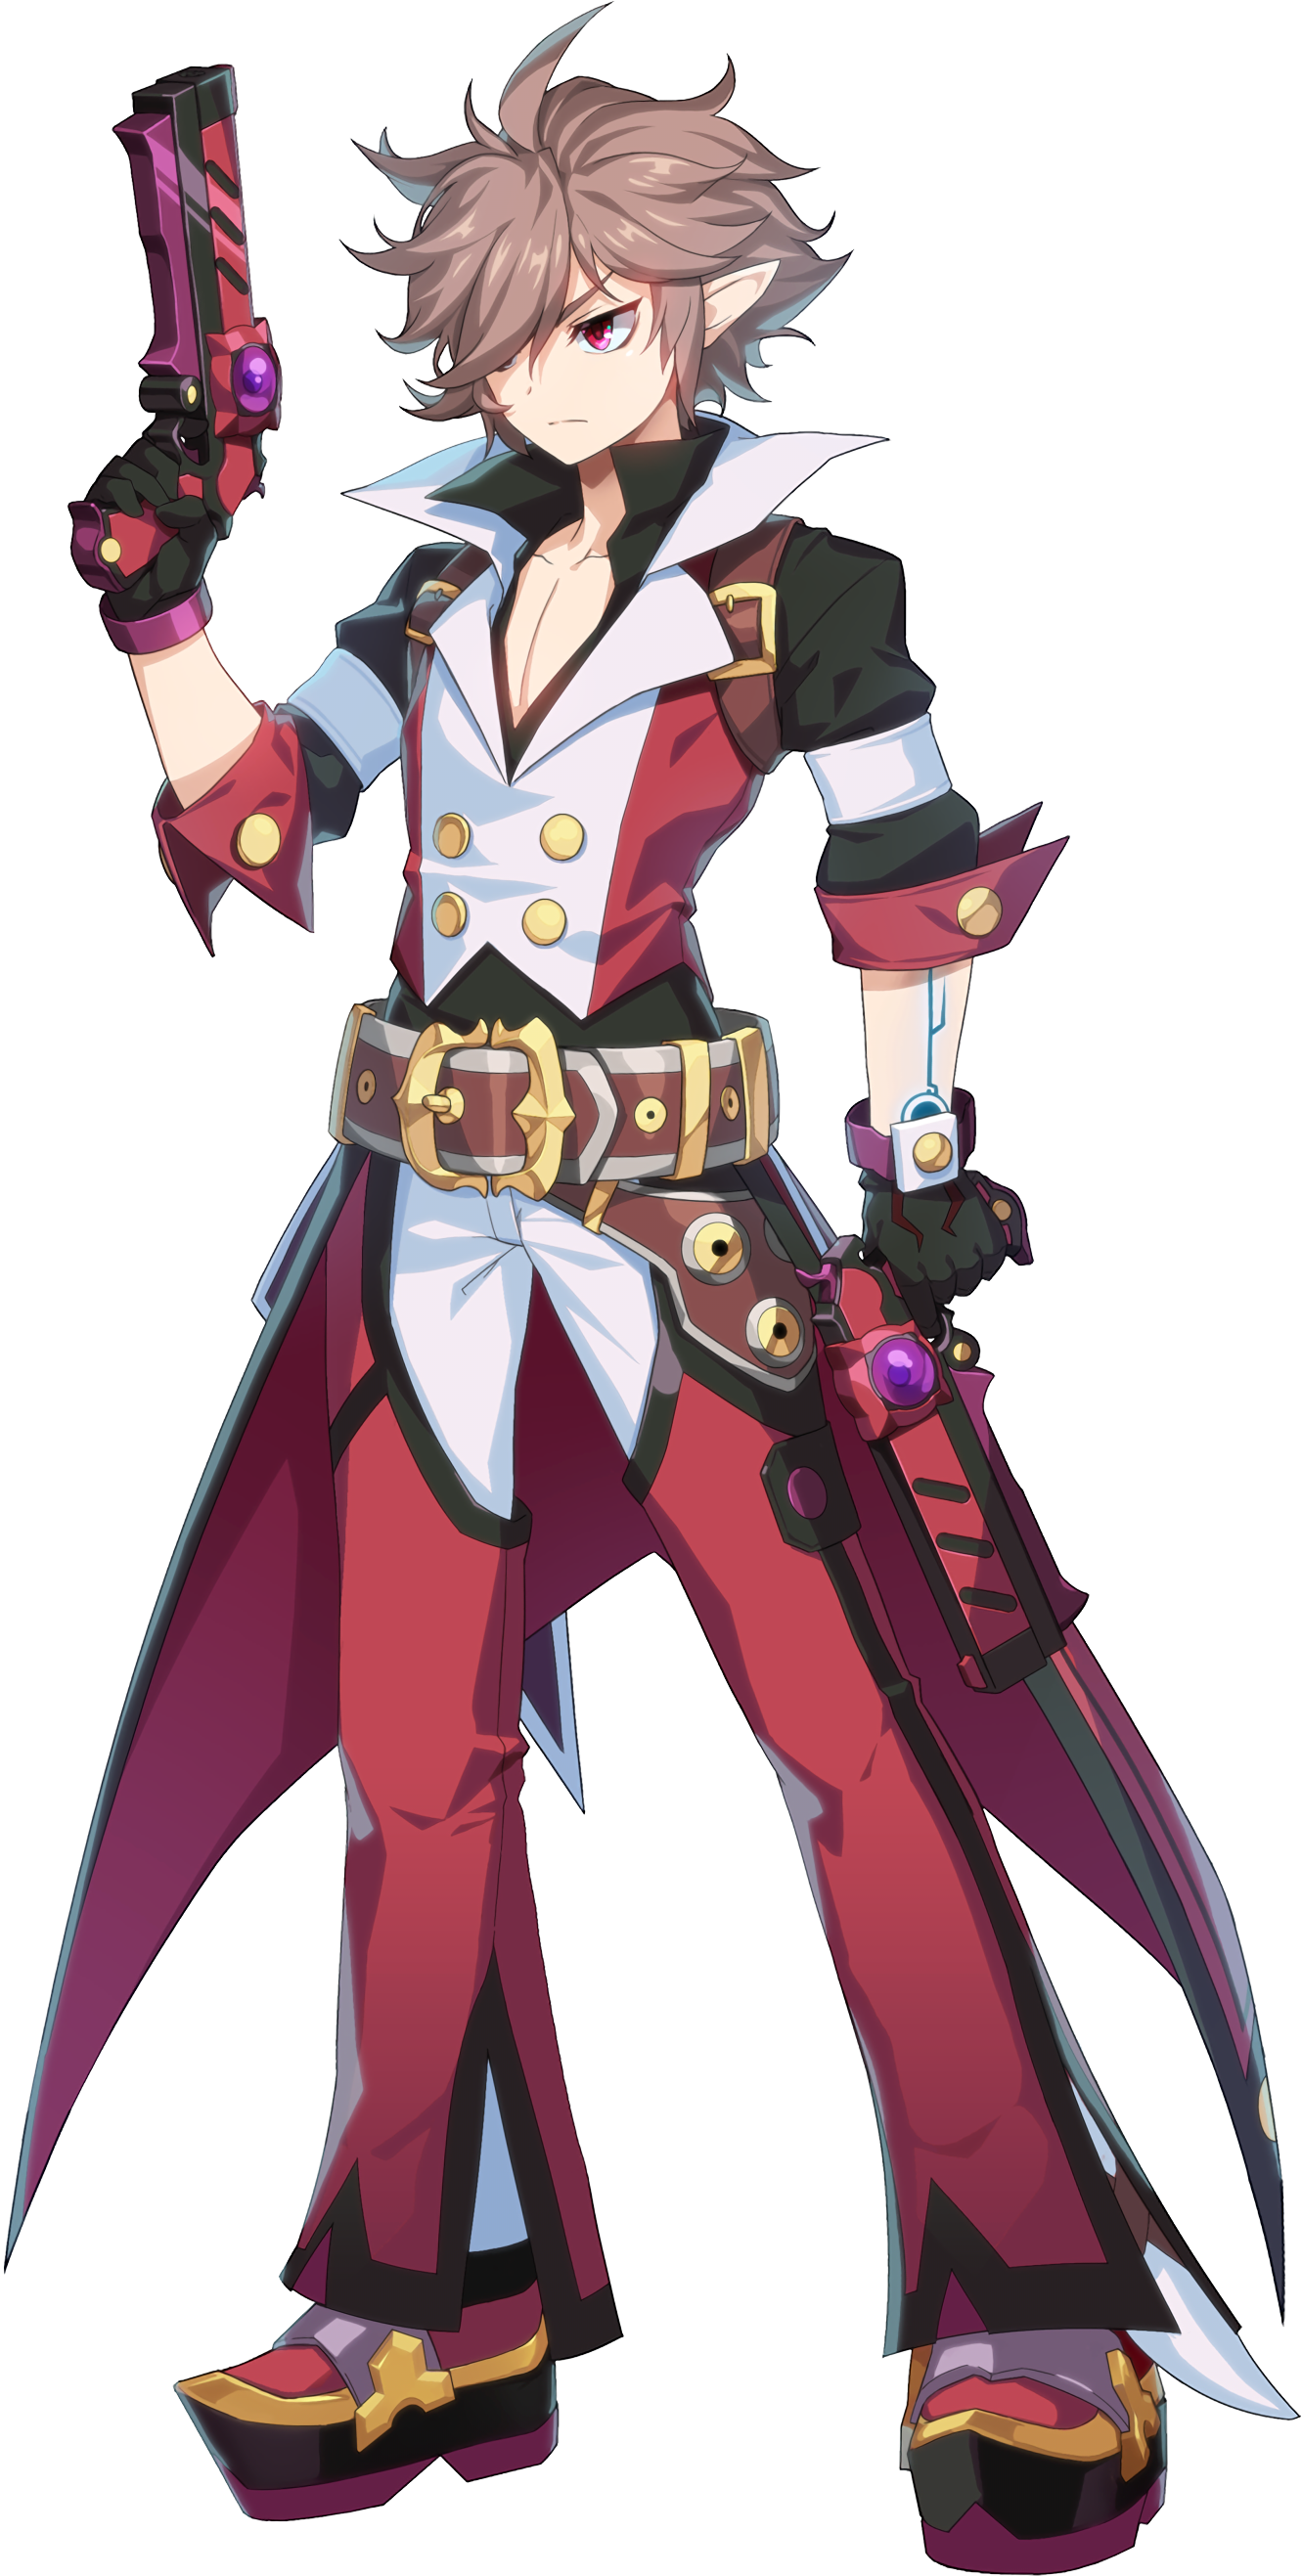 Rufus/Grand Chase Dimensional Chaser | Grand Chase Wiki